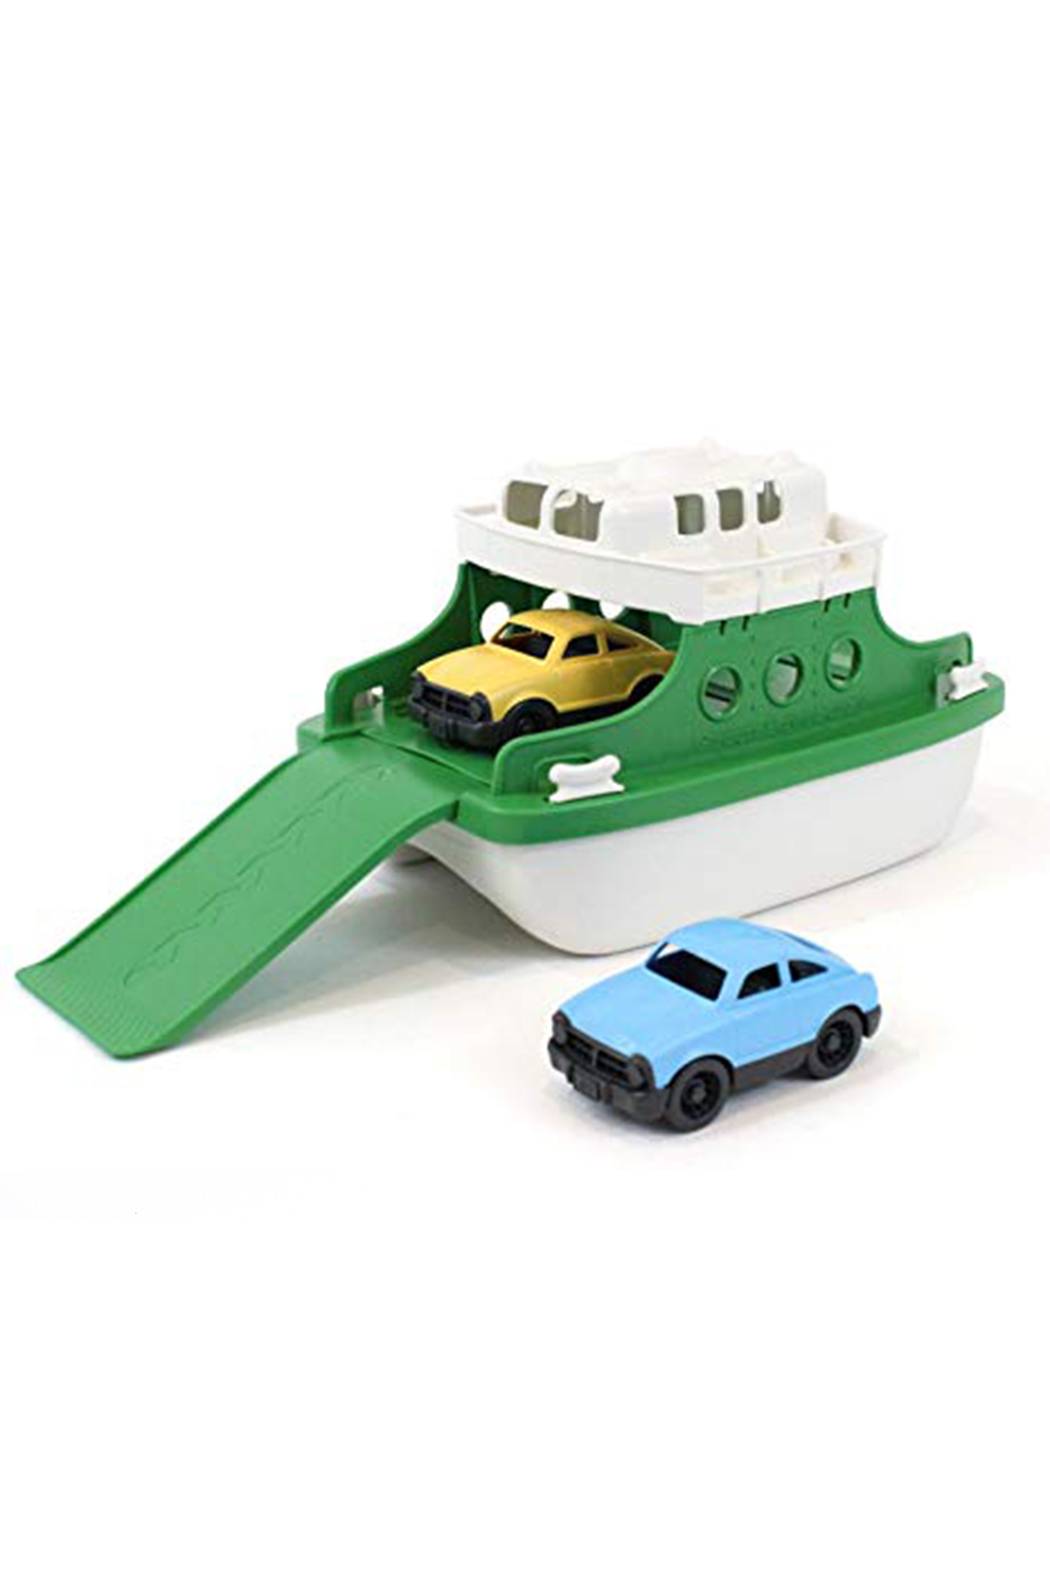 Green Toys Ferry Boat Green - Main Image